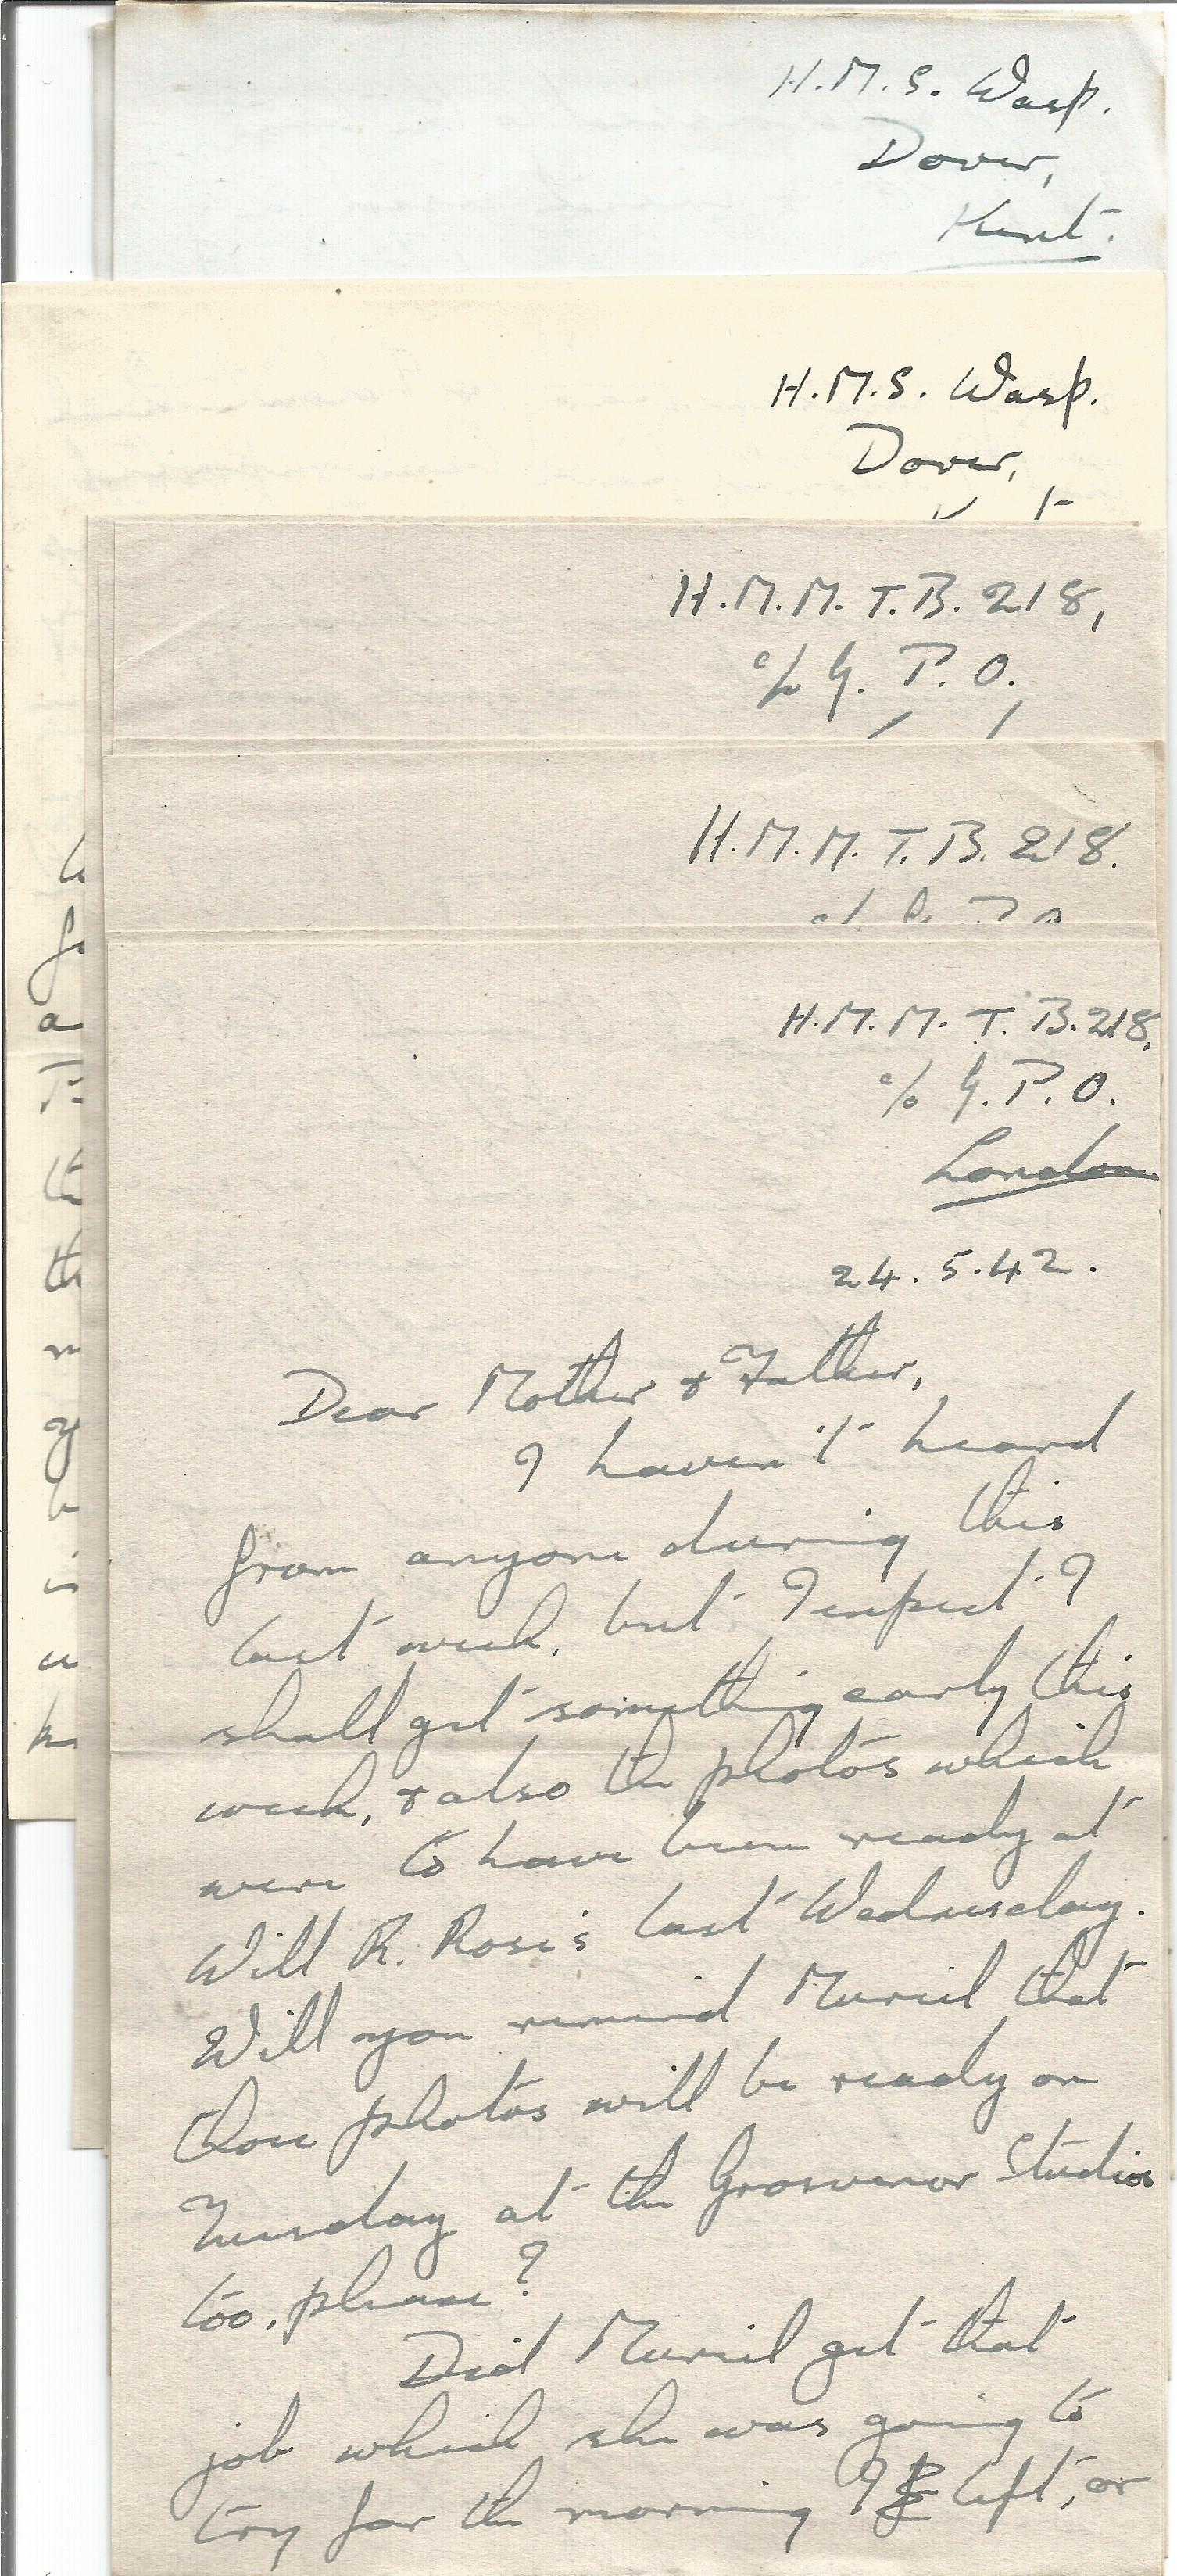 14 Hand written Letters from a Crew Member of H. M. Motor Torpedo Boat 218 with Interesting Content, - Image 4 of 4